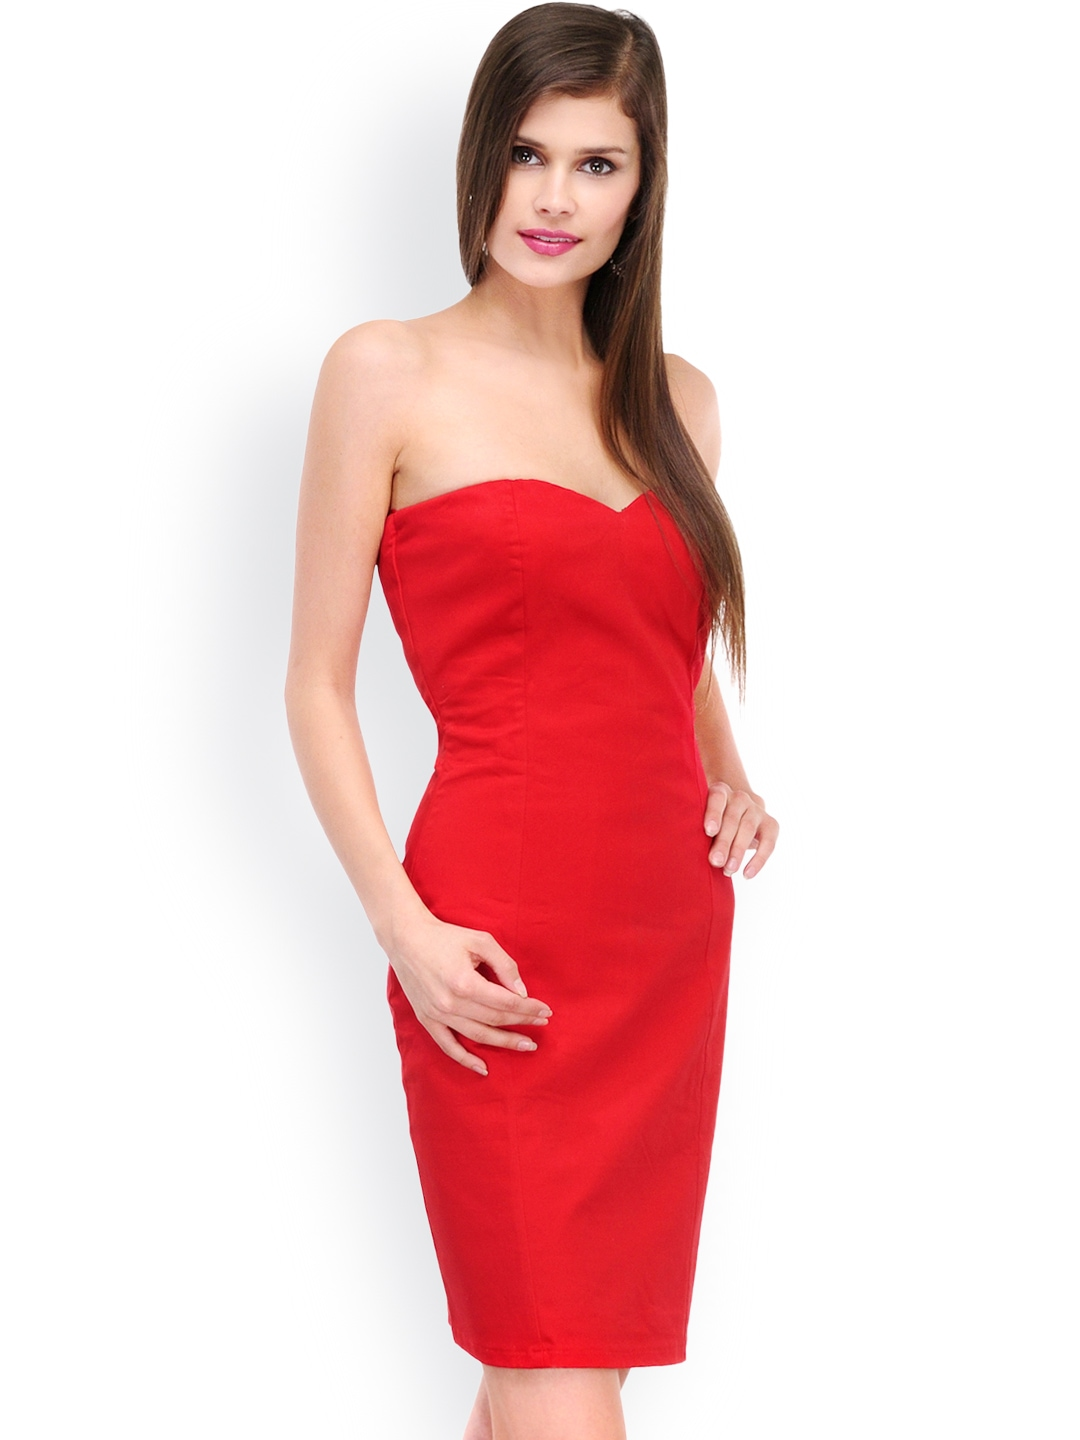 XOXO is an online designer store offering designer dresses online in India for women. Now buy designer clothing online without any hassle. We deliver all over India.